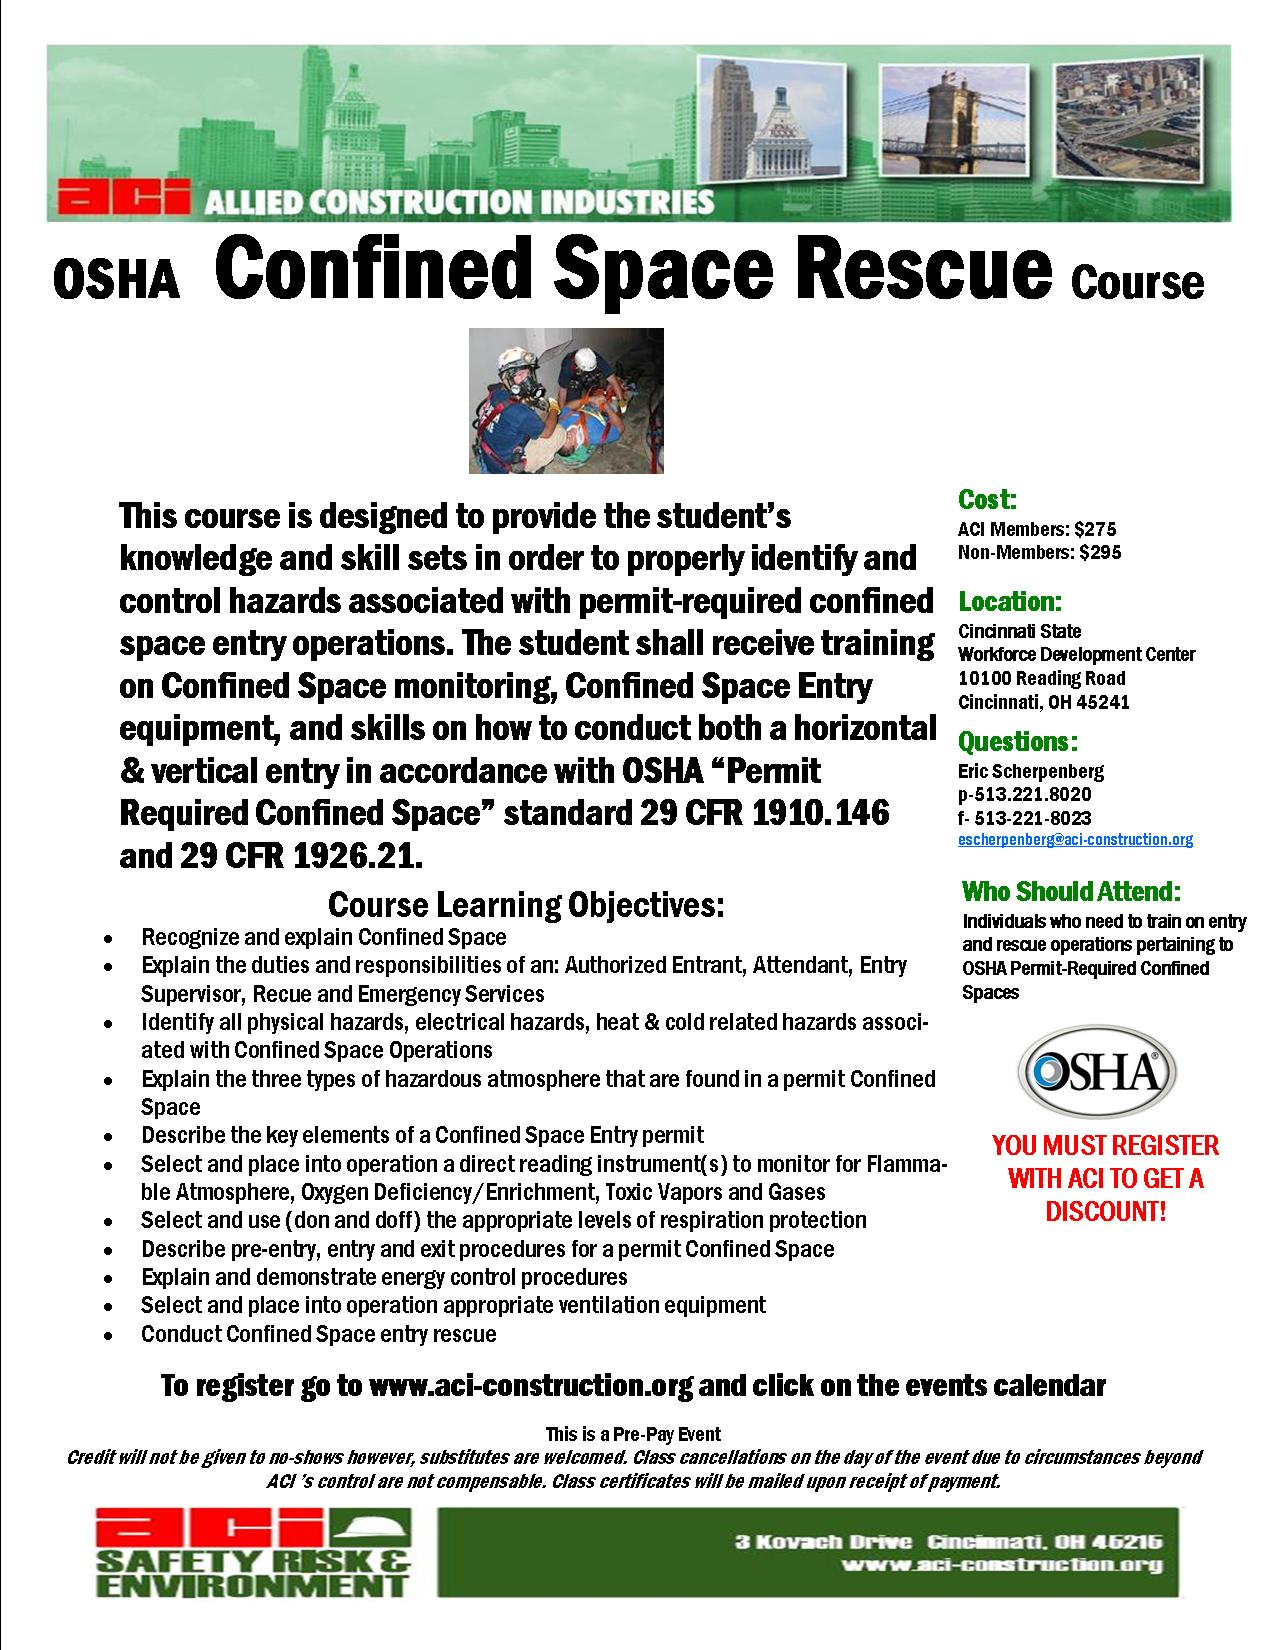 Confined Space Rescue December 12-13, 2013-Cancelled | Allied ...